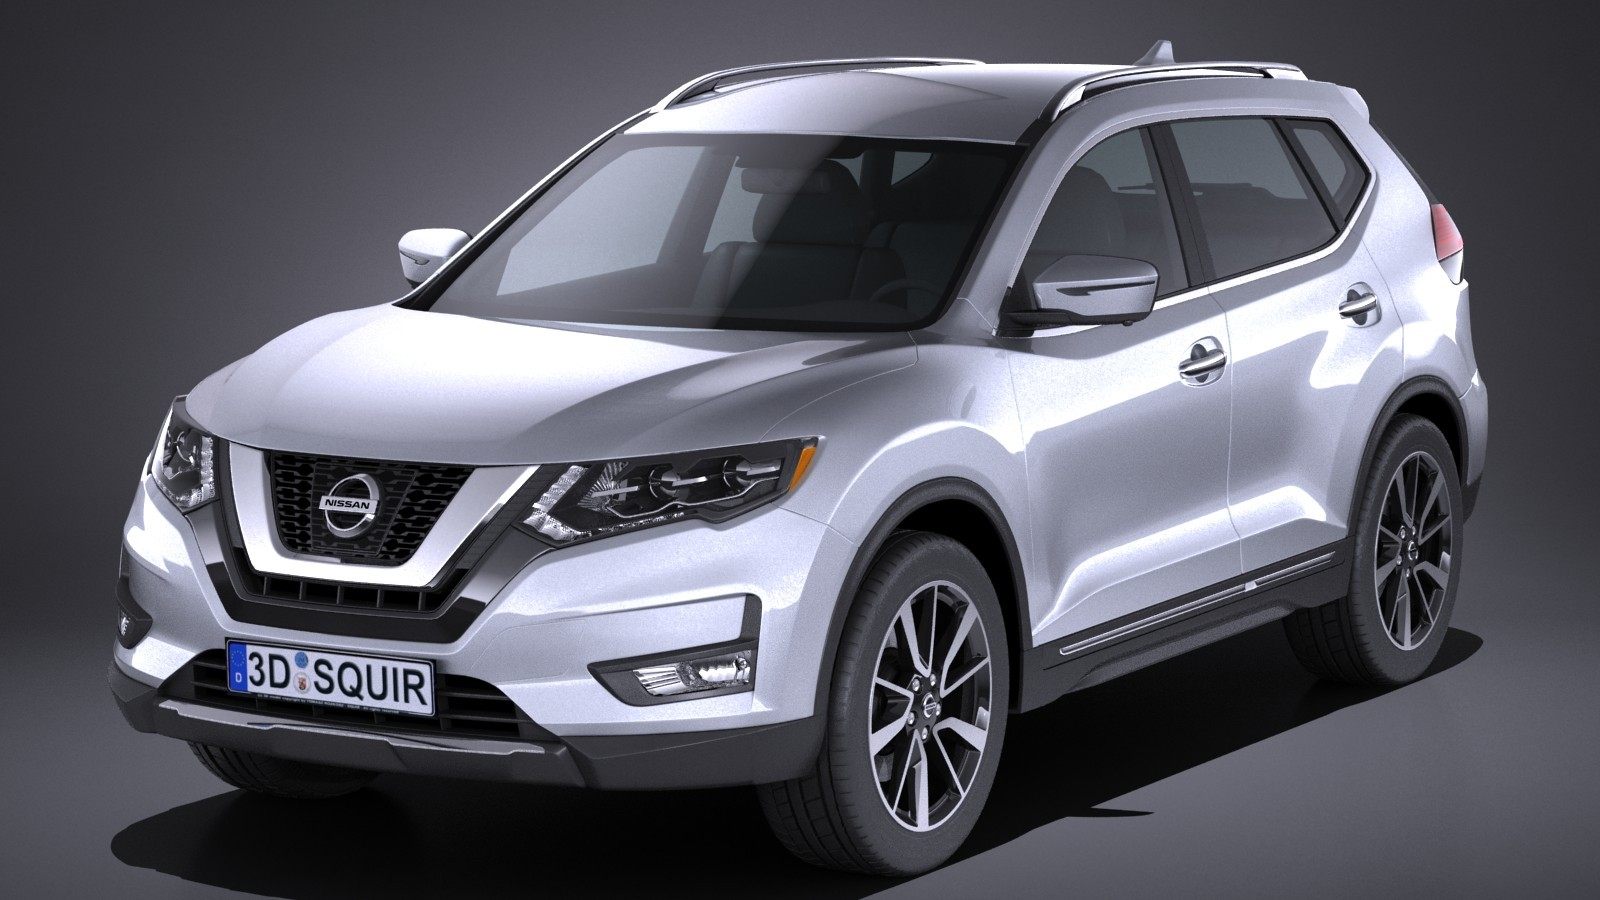 nissan x trail 2017 suv offroad car vehicles 3d models. Black Bedroom Furniture Sets. Home Design Ideas